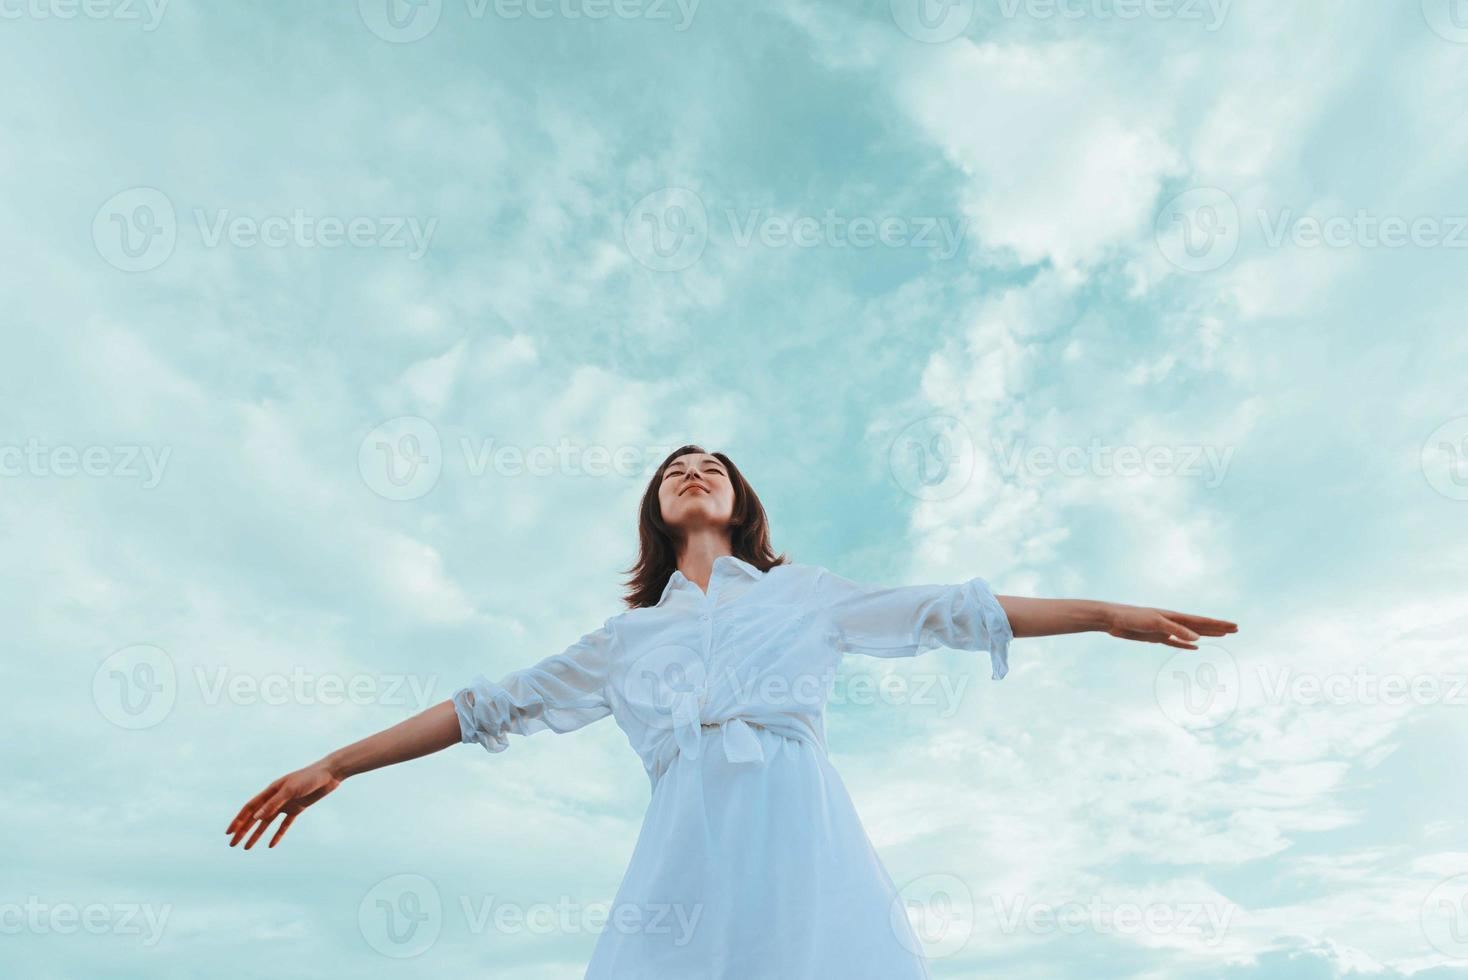 Young woman with raised arms enjoying a nice day photo